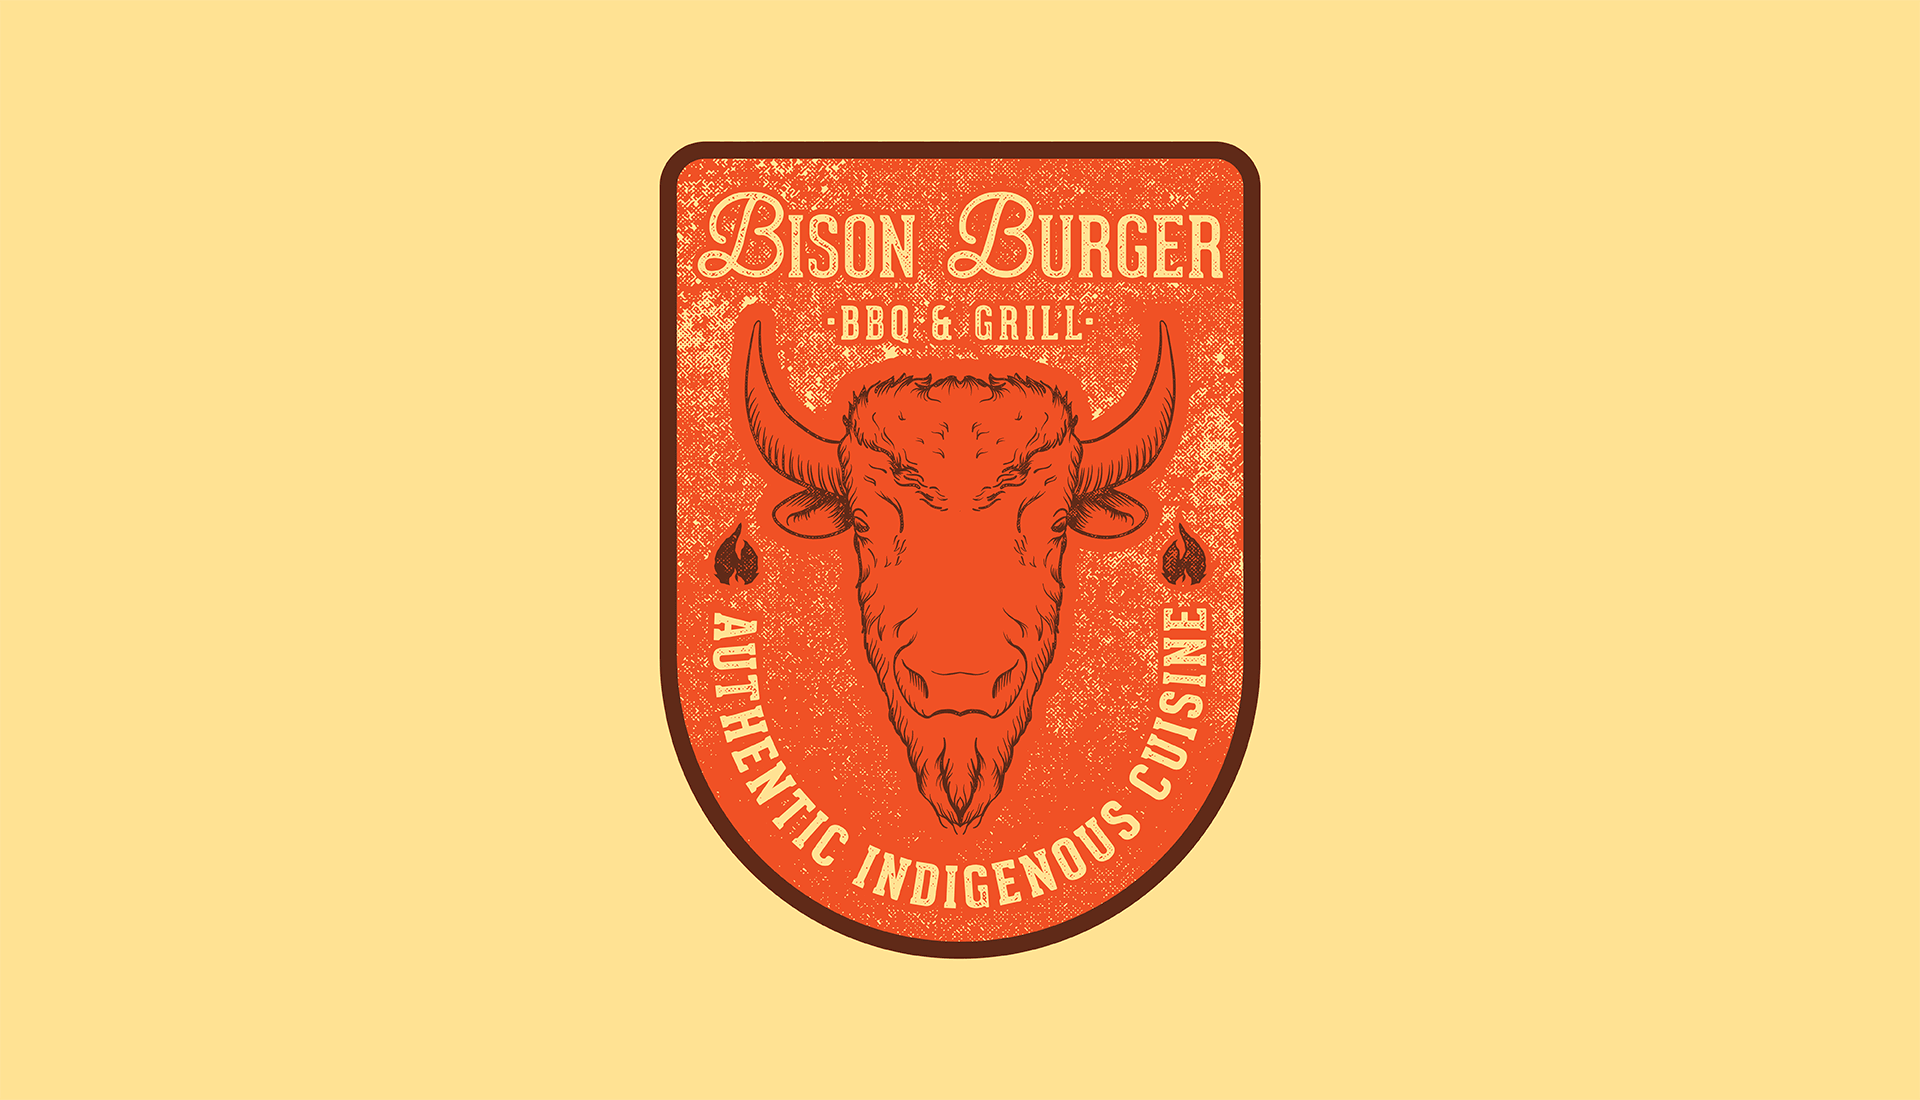 Bison Burger BBQ & Grill | Secondary Badge, Authentic Indigenous Cuisine